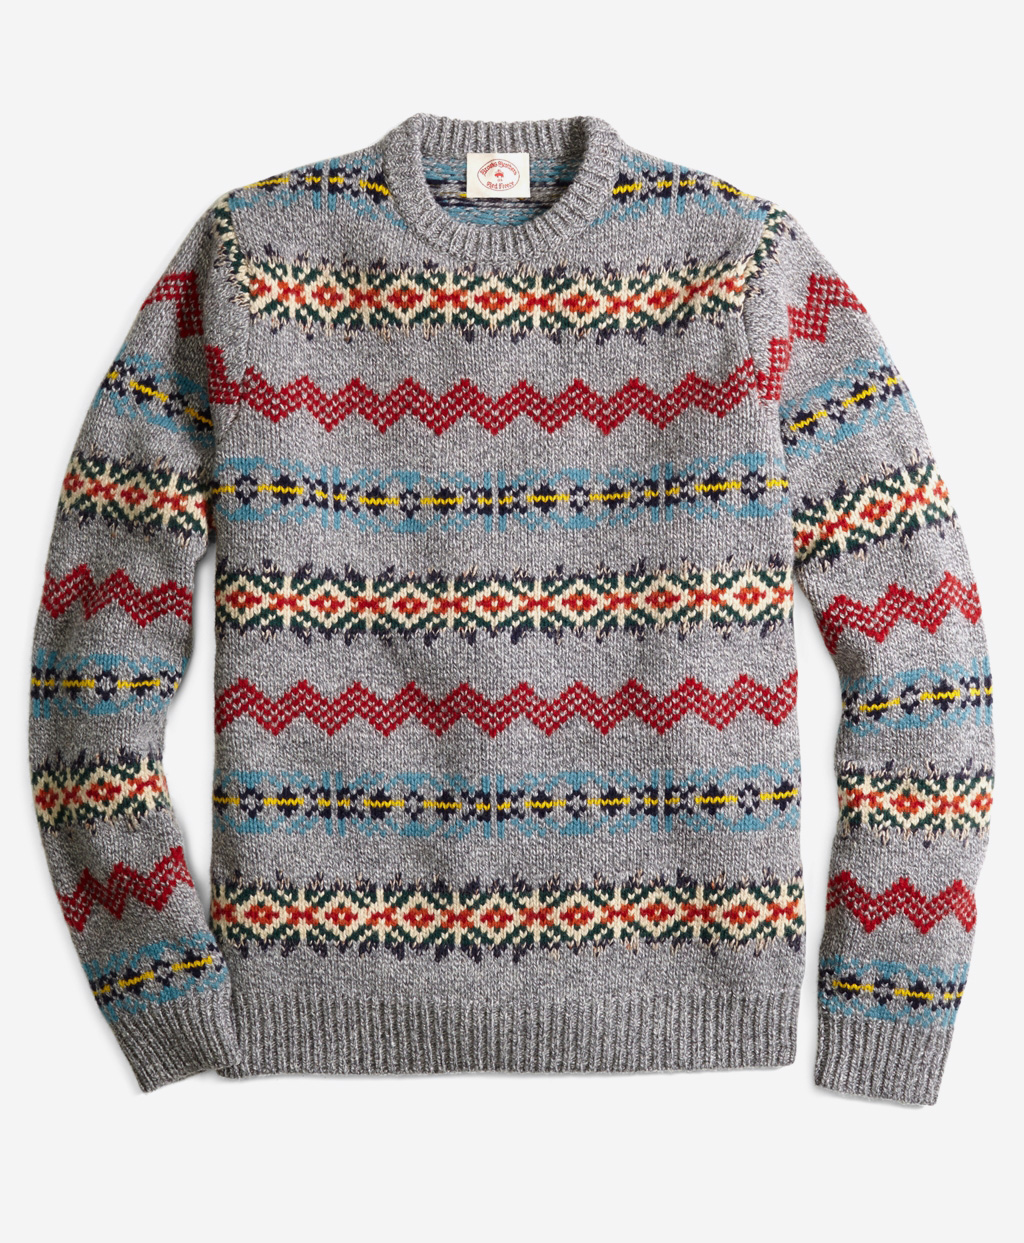 Fair Isle: A Brief History | Brooks Brothers